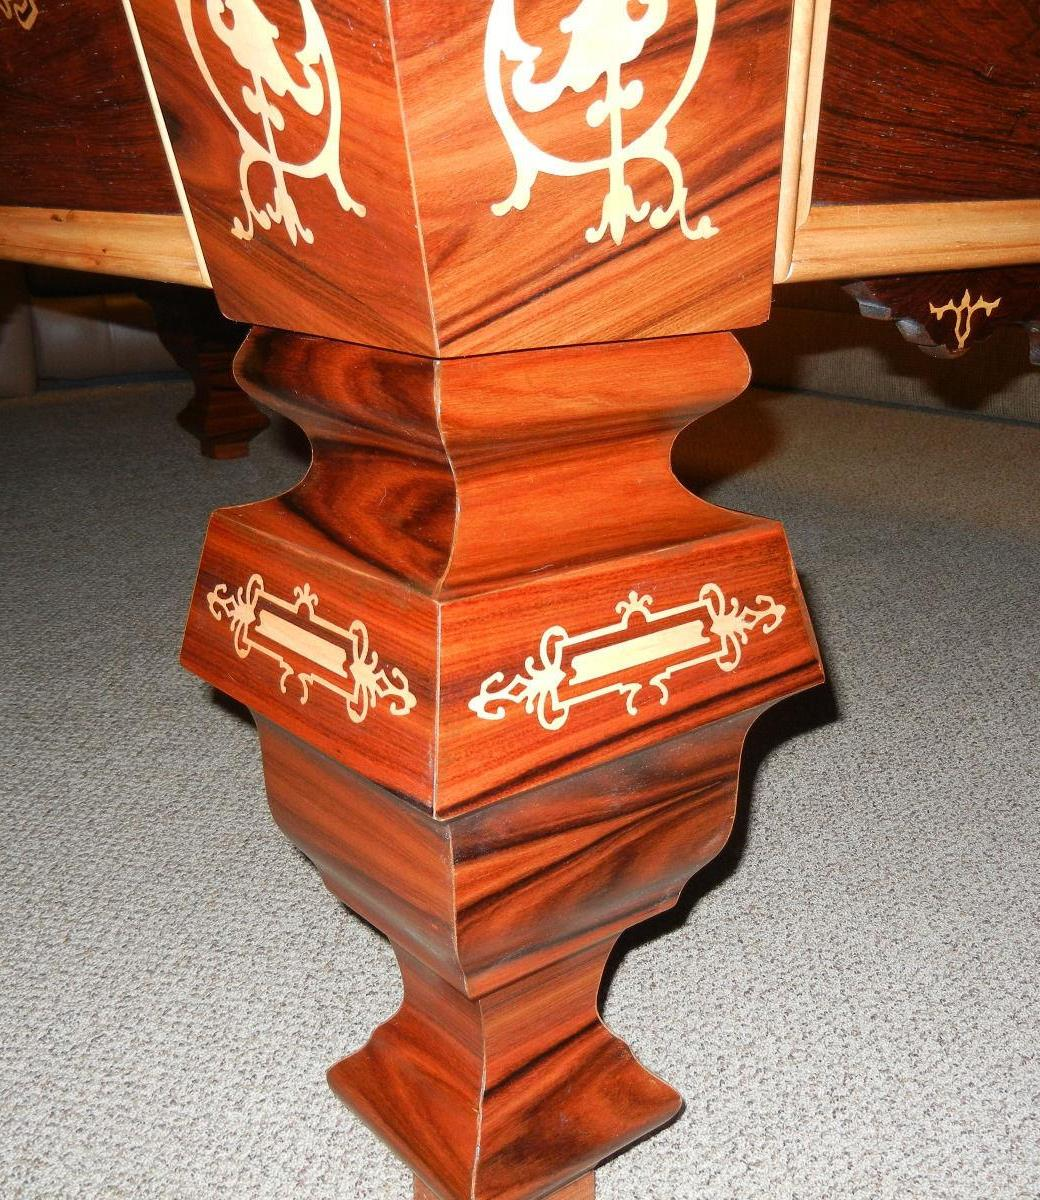 Example of a restored Brunswick pool table from the 1980s with intricate inlay work